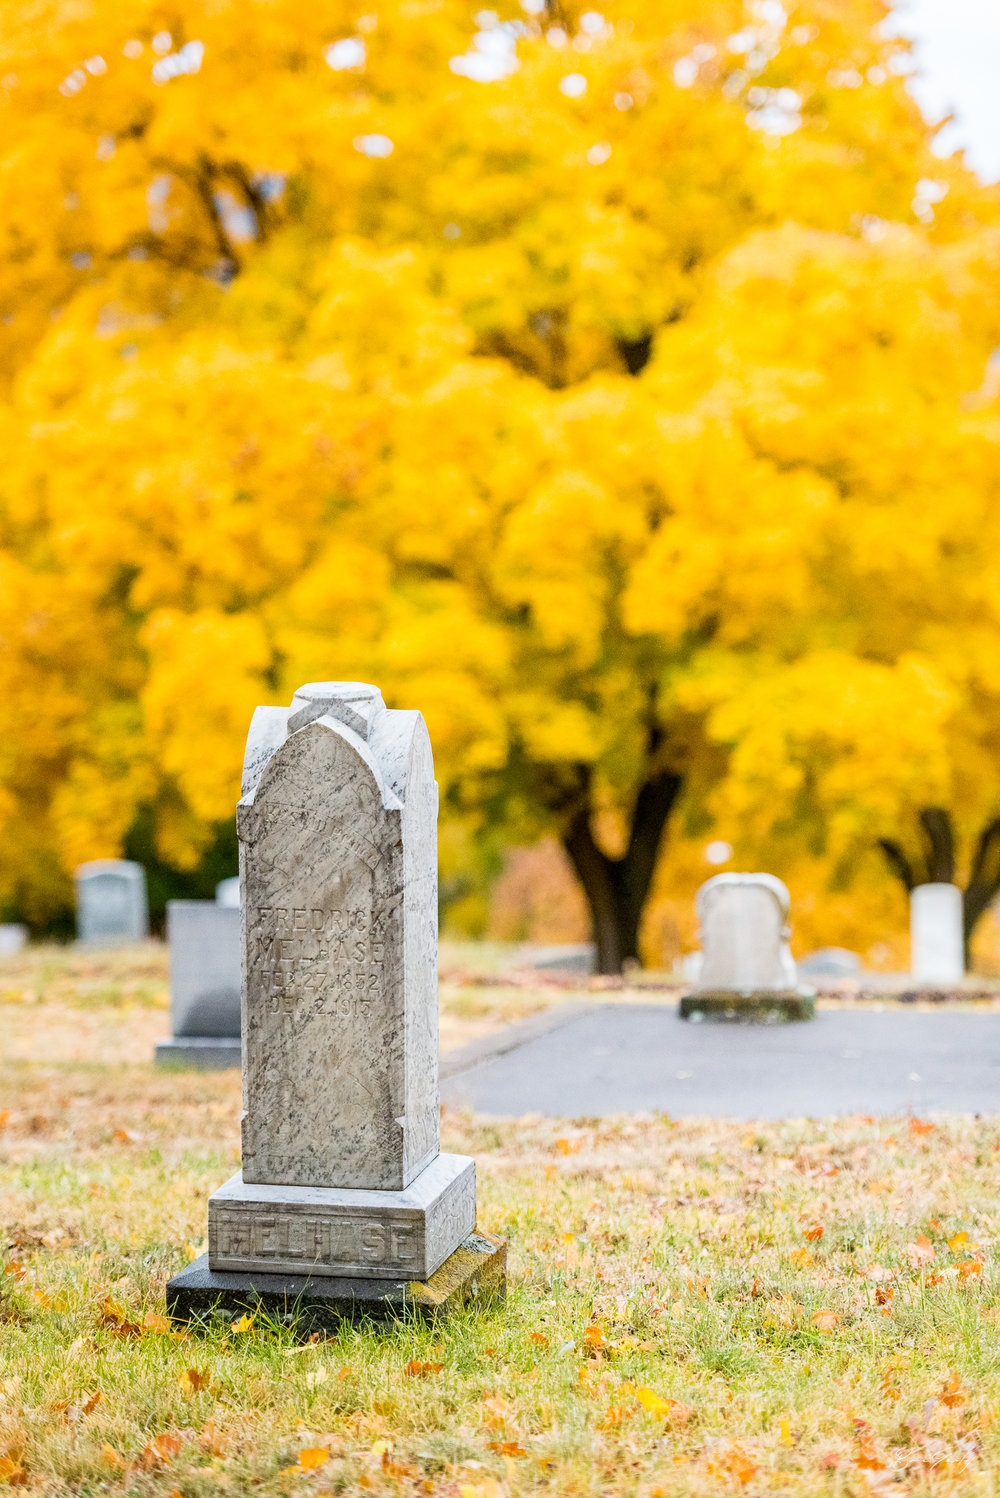 The tombstone of Fredrick Melhase (1852-1915) is seen here in the Linkville Cemetery during the peak of the fall color season in Klamath Falls. Image: Brian Gailey